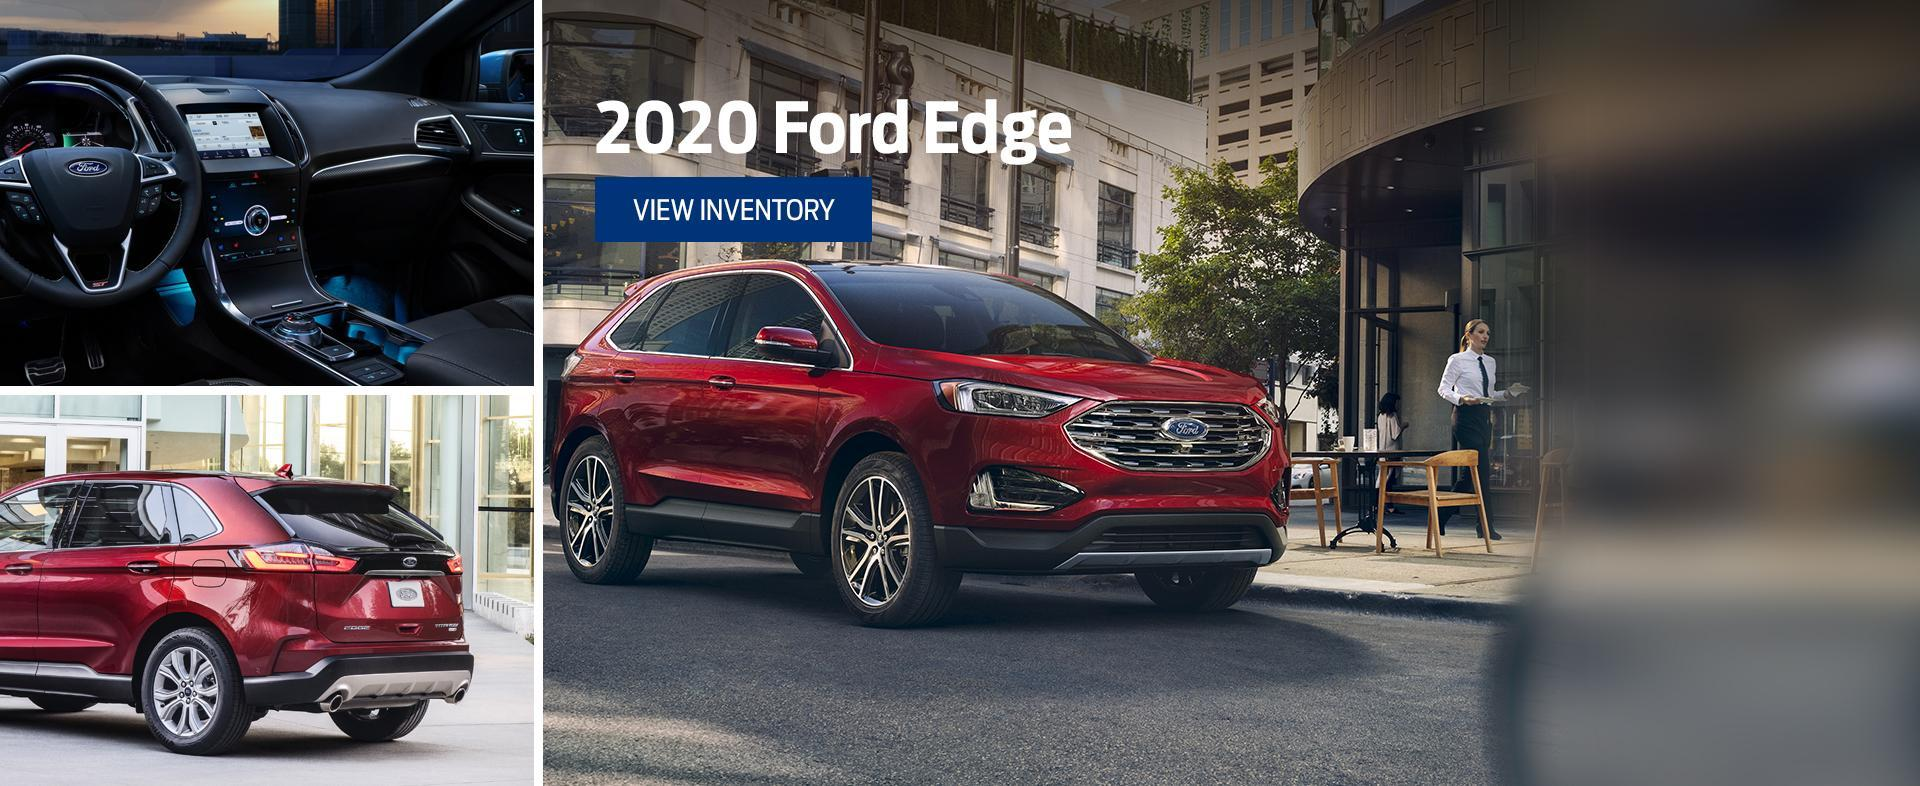 Ford Home | Taylor Ford Amherst | Amherst Ford Dealership  2020 Edge